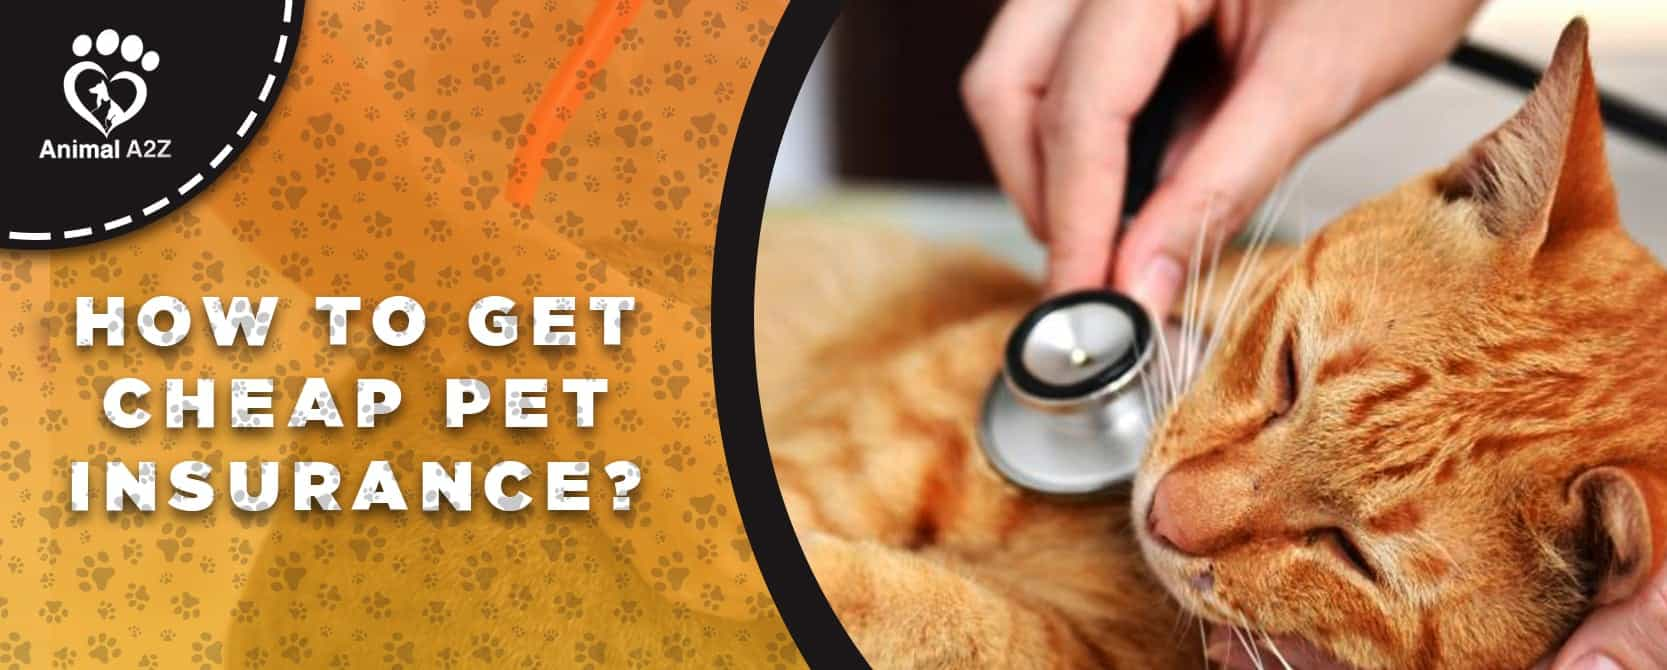 how to get cheap pet insurance